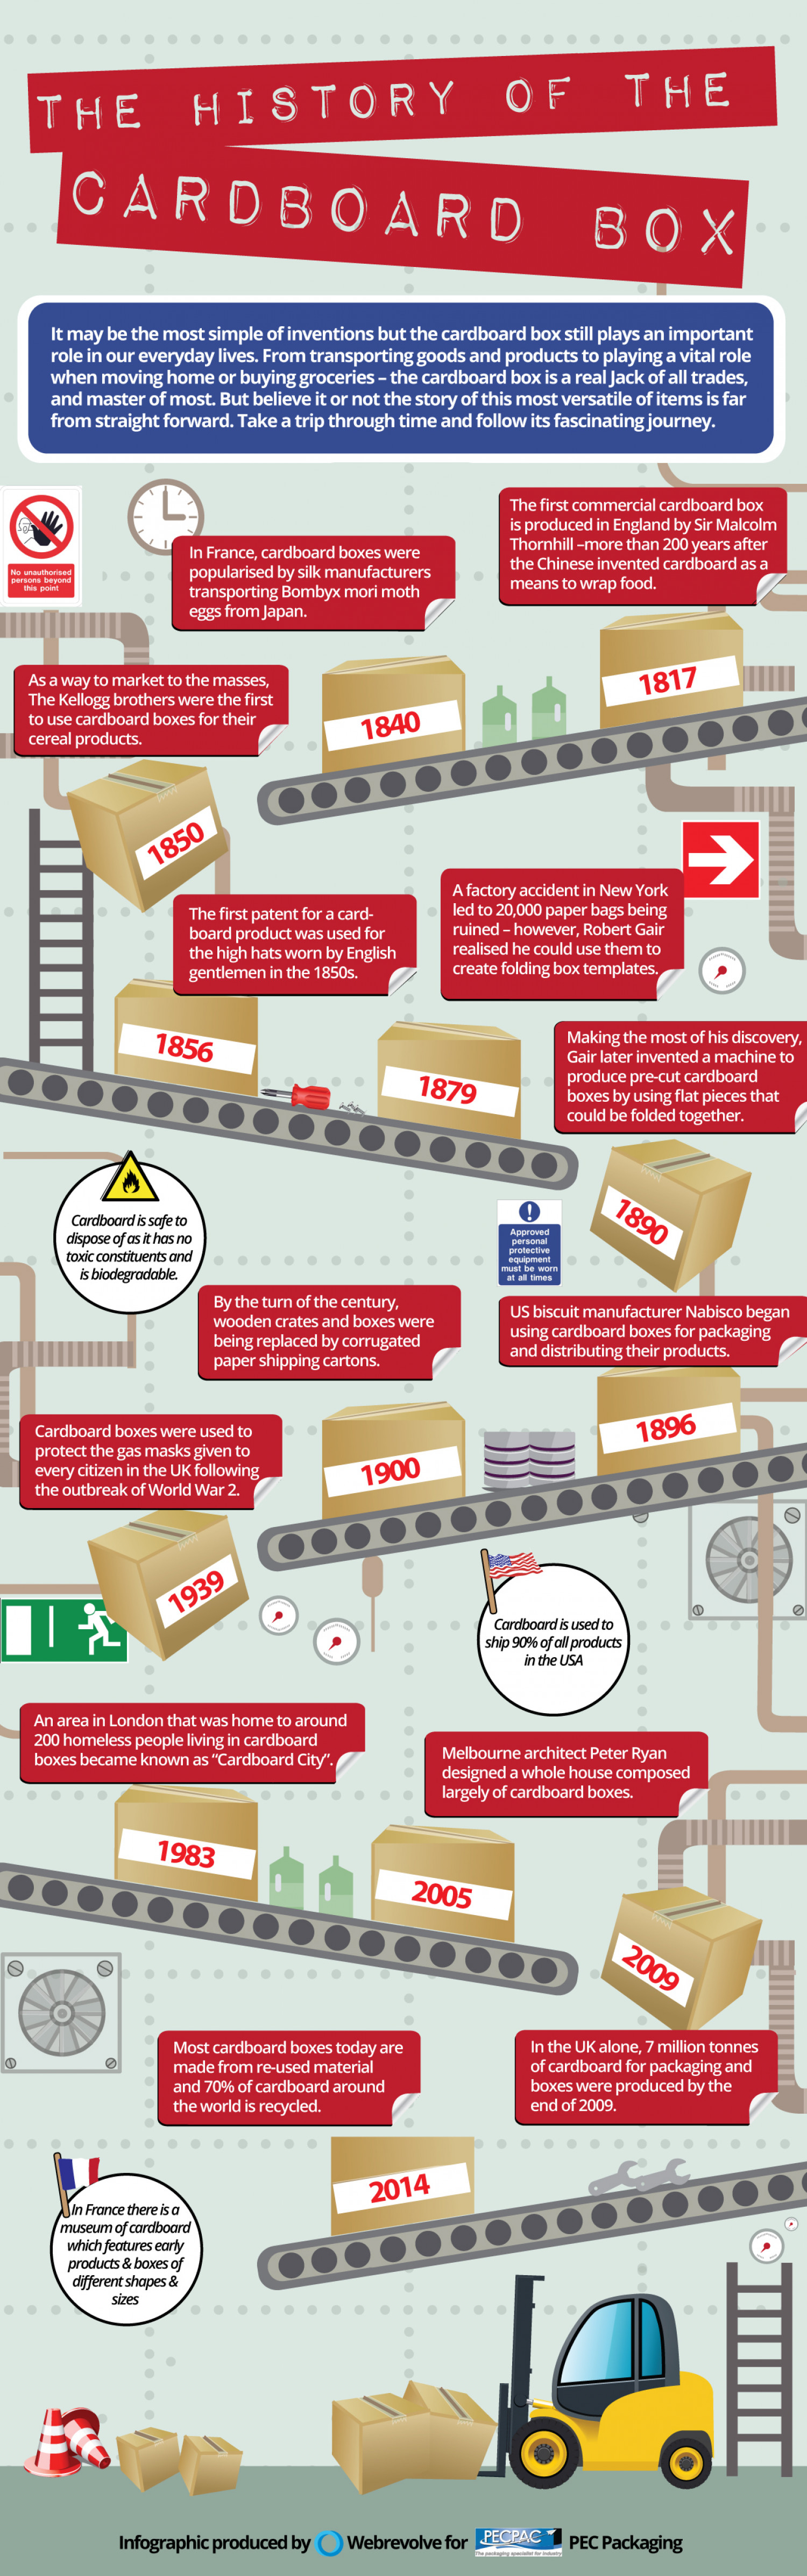 The History of the Cardboard Box Infographic